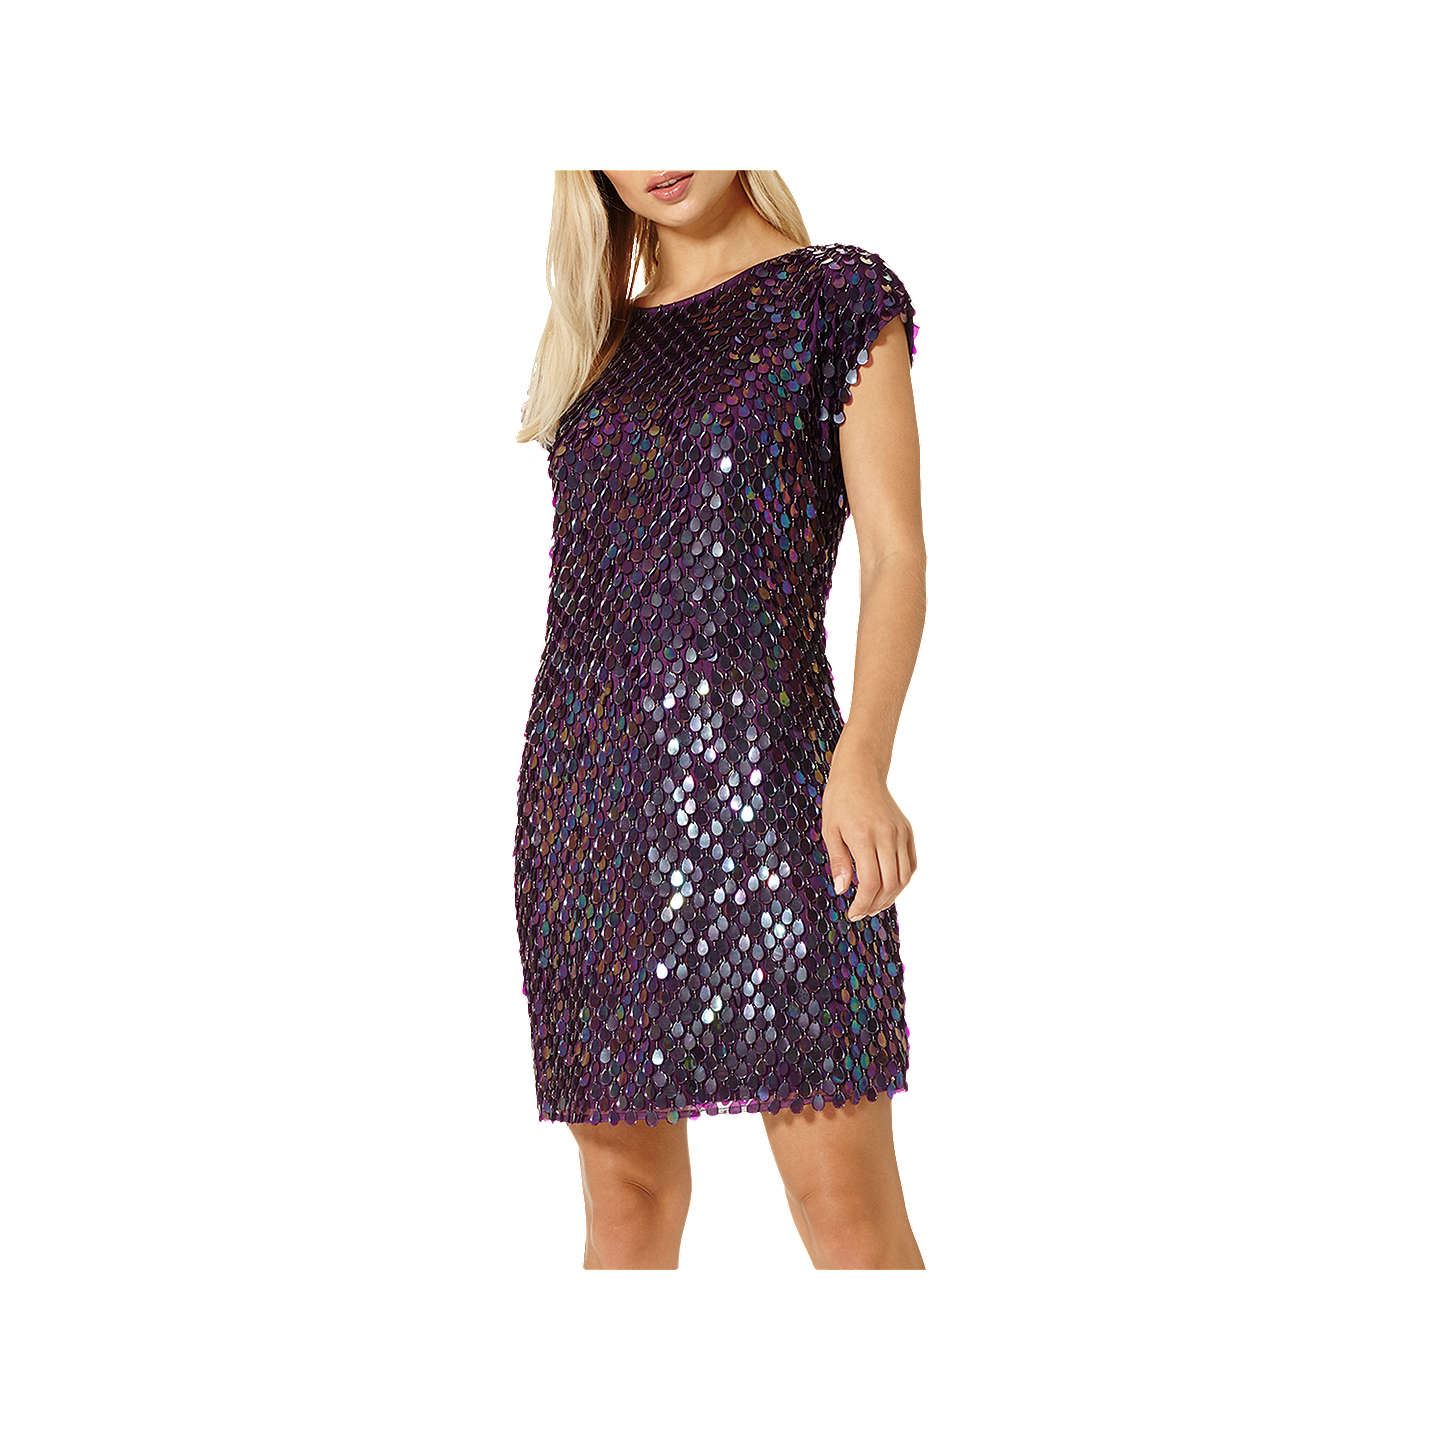 Damsel in a dress Savannah Sequin Dress, Aubergine at John Lewis